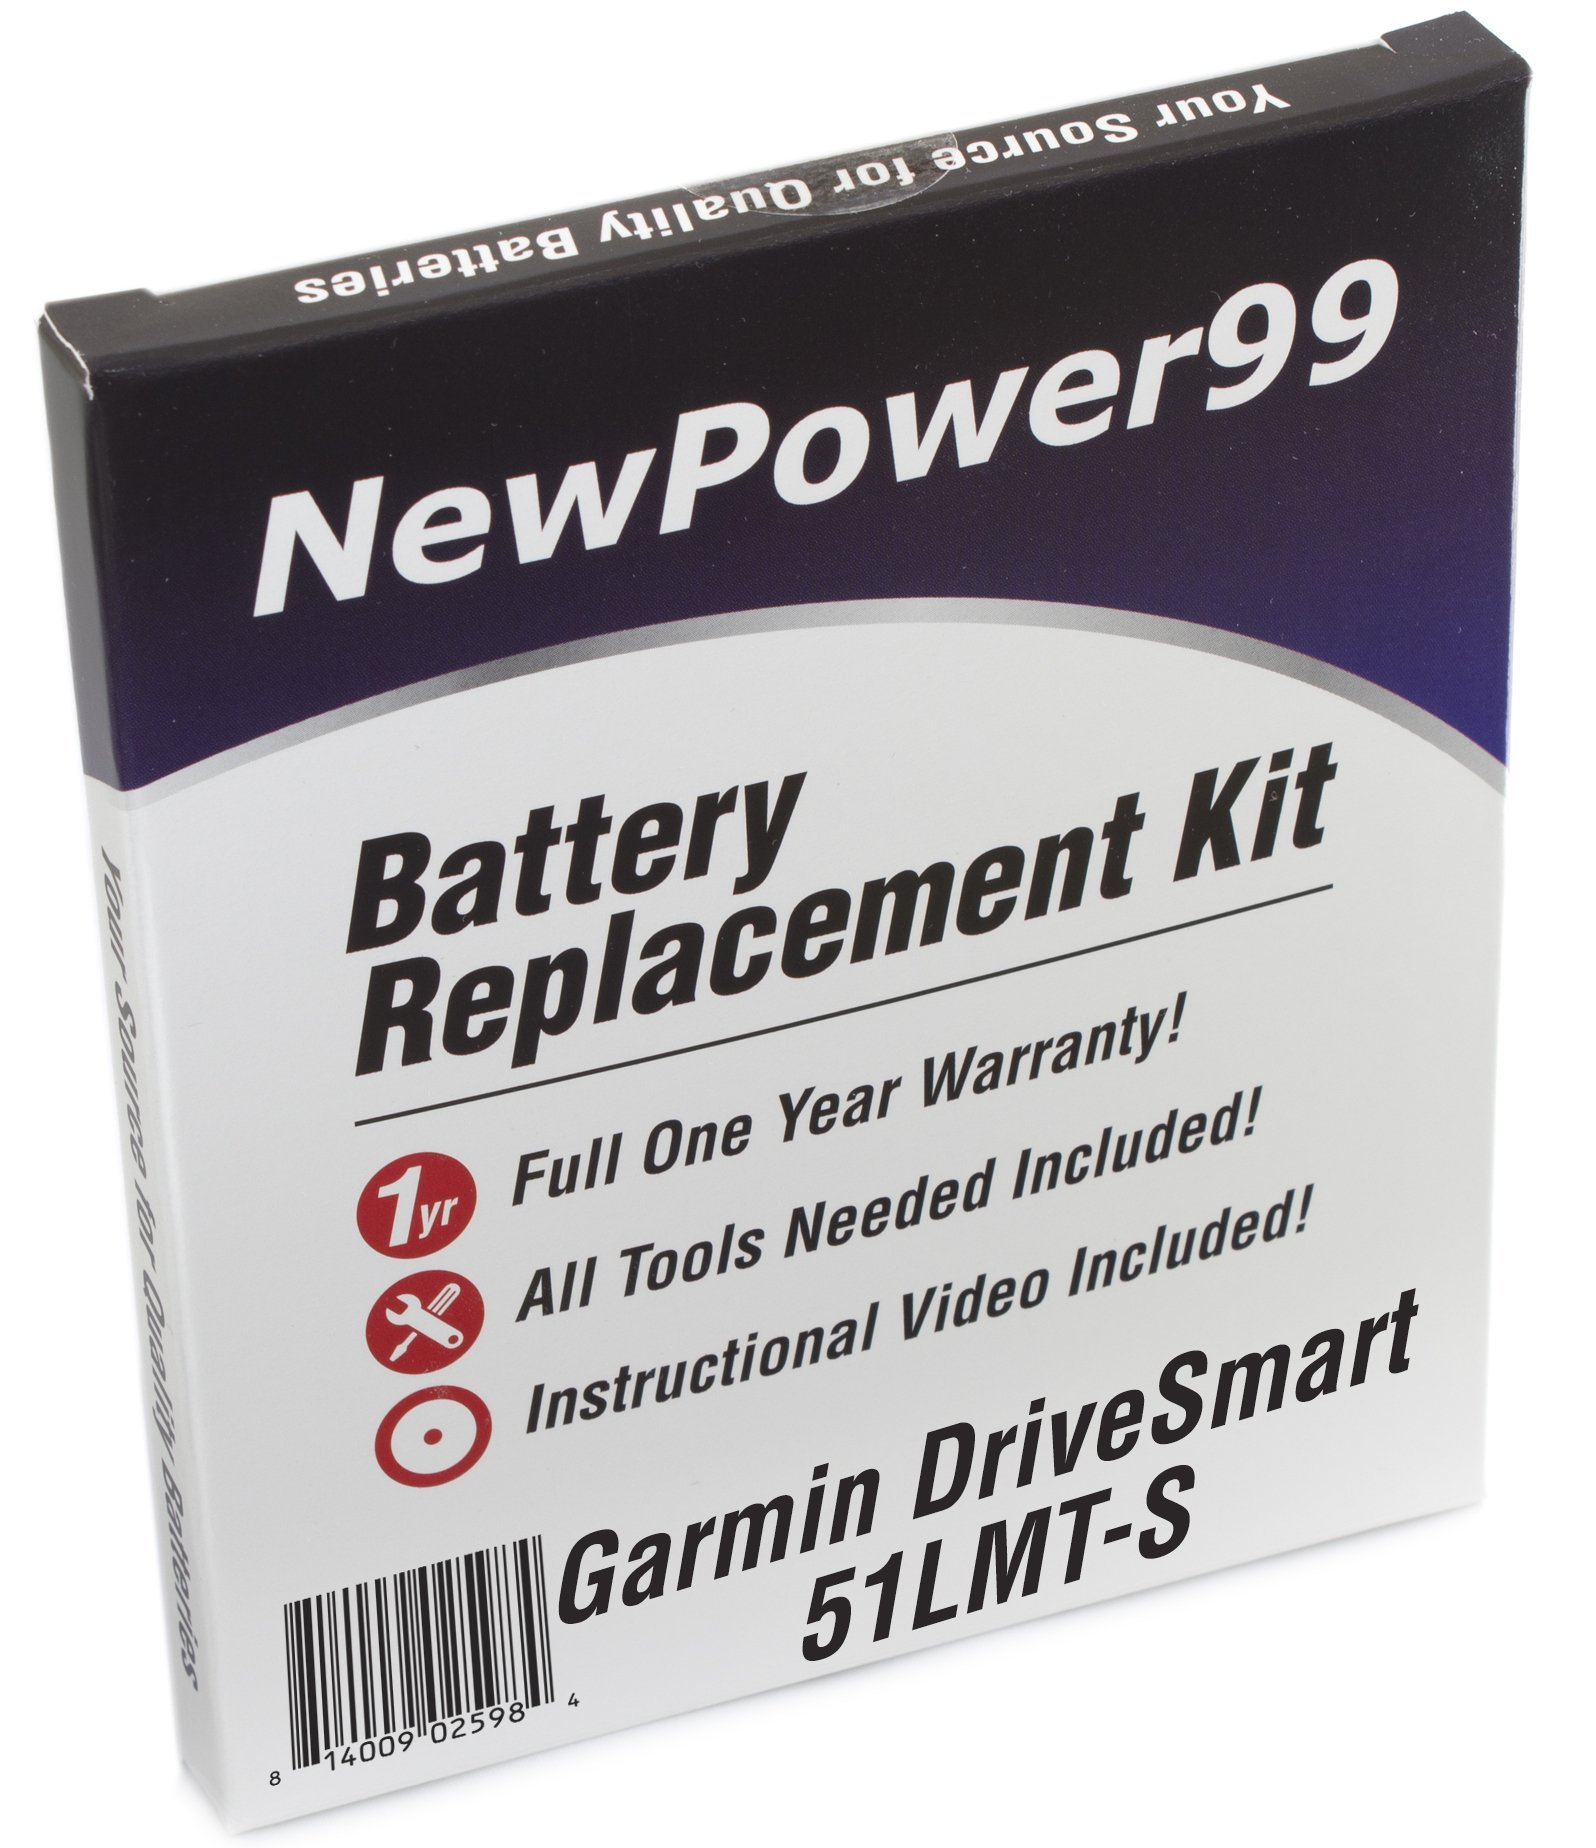 NewPower99 Battery Replacement Kit with Battery, Video Instructions and Tools for Garmin DriveSmart 51LMT-S by NewPower99